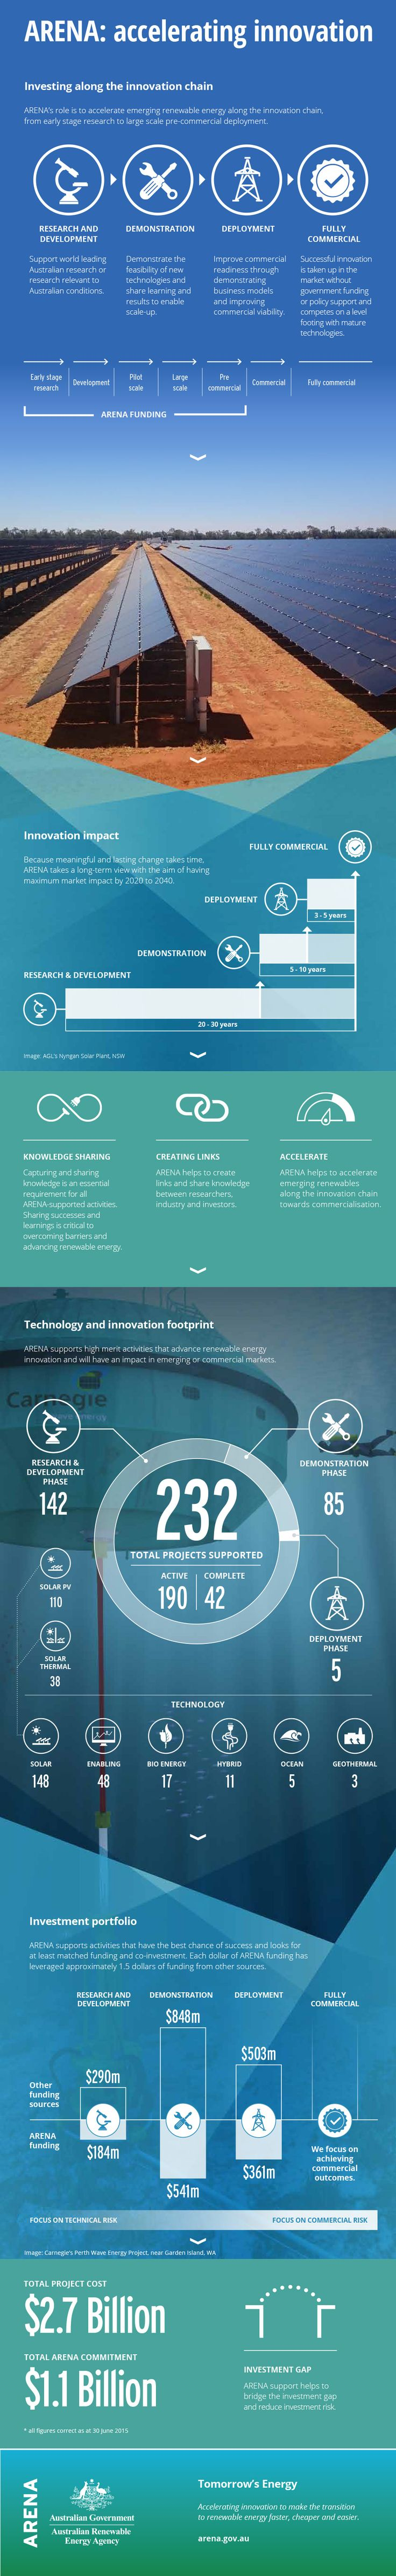 ARENA: accelerating #innovation. Investing along the innovation chain. Our role is to accelerate emerging #renewable energy along the innovation chain, from early stage research to large scale pre-commercial deployment. Innovation chain stages: research and development, demonstration, deployment and fully commercial. #ausrenewables